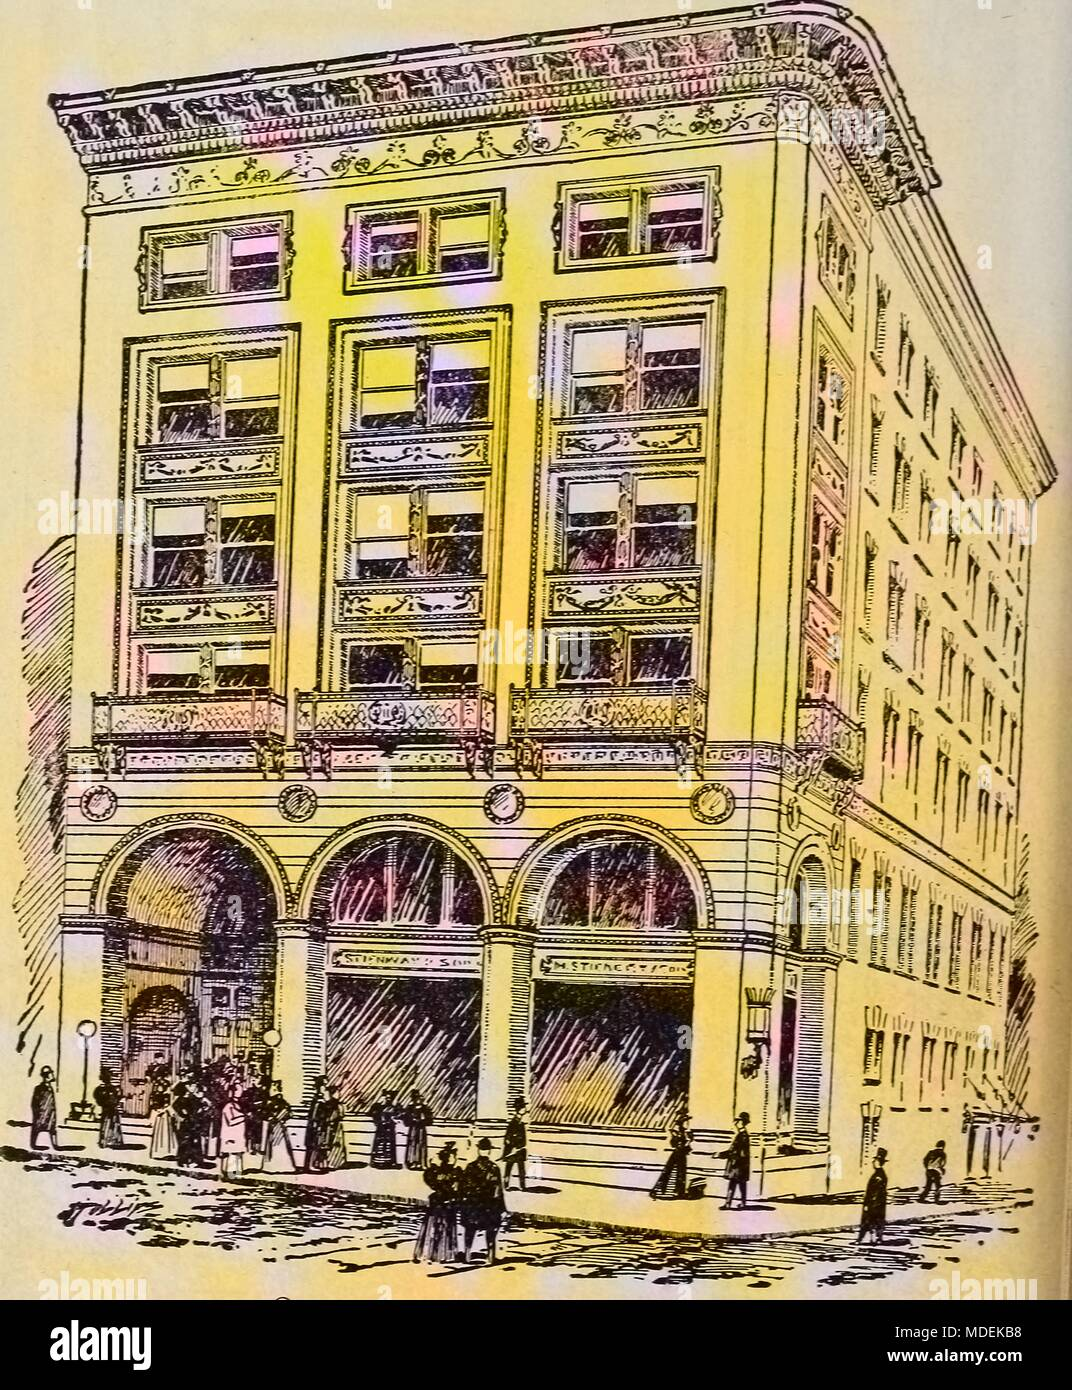 Pen and ink drawing of Steinert Hall, Boylston Street, Boston, Massachusetts, 1878. Courtesy Internet Archive. Note: Image has been digitally colorized using a modern process. Colors may not be period-accurate. () Stock Photo